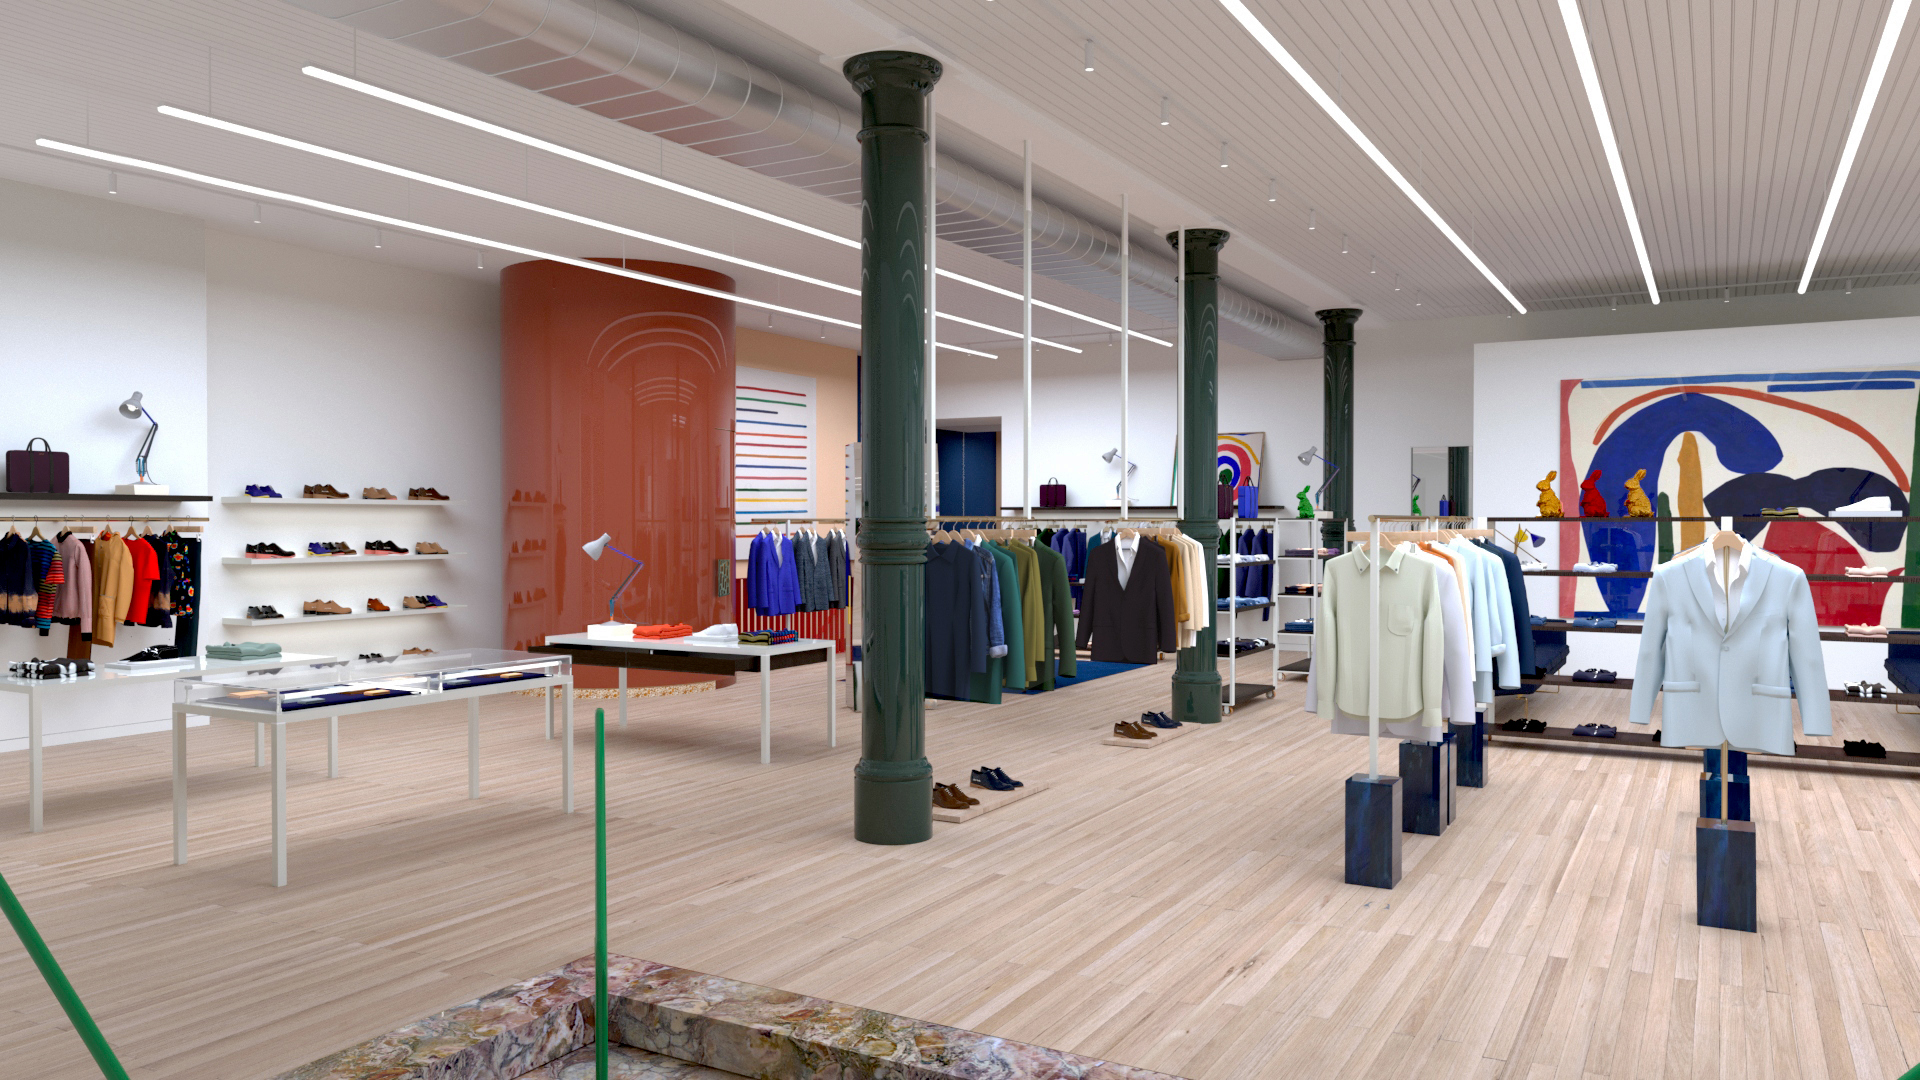 A look inside Paul Smith's new Wooster Street store in SoHo.